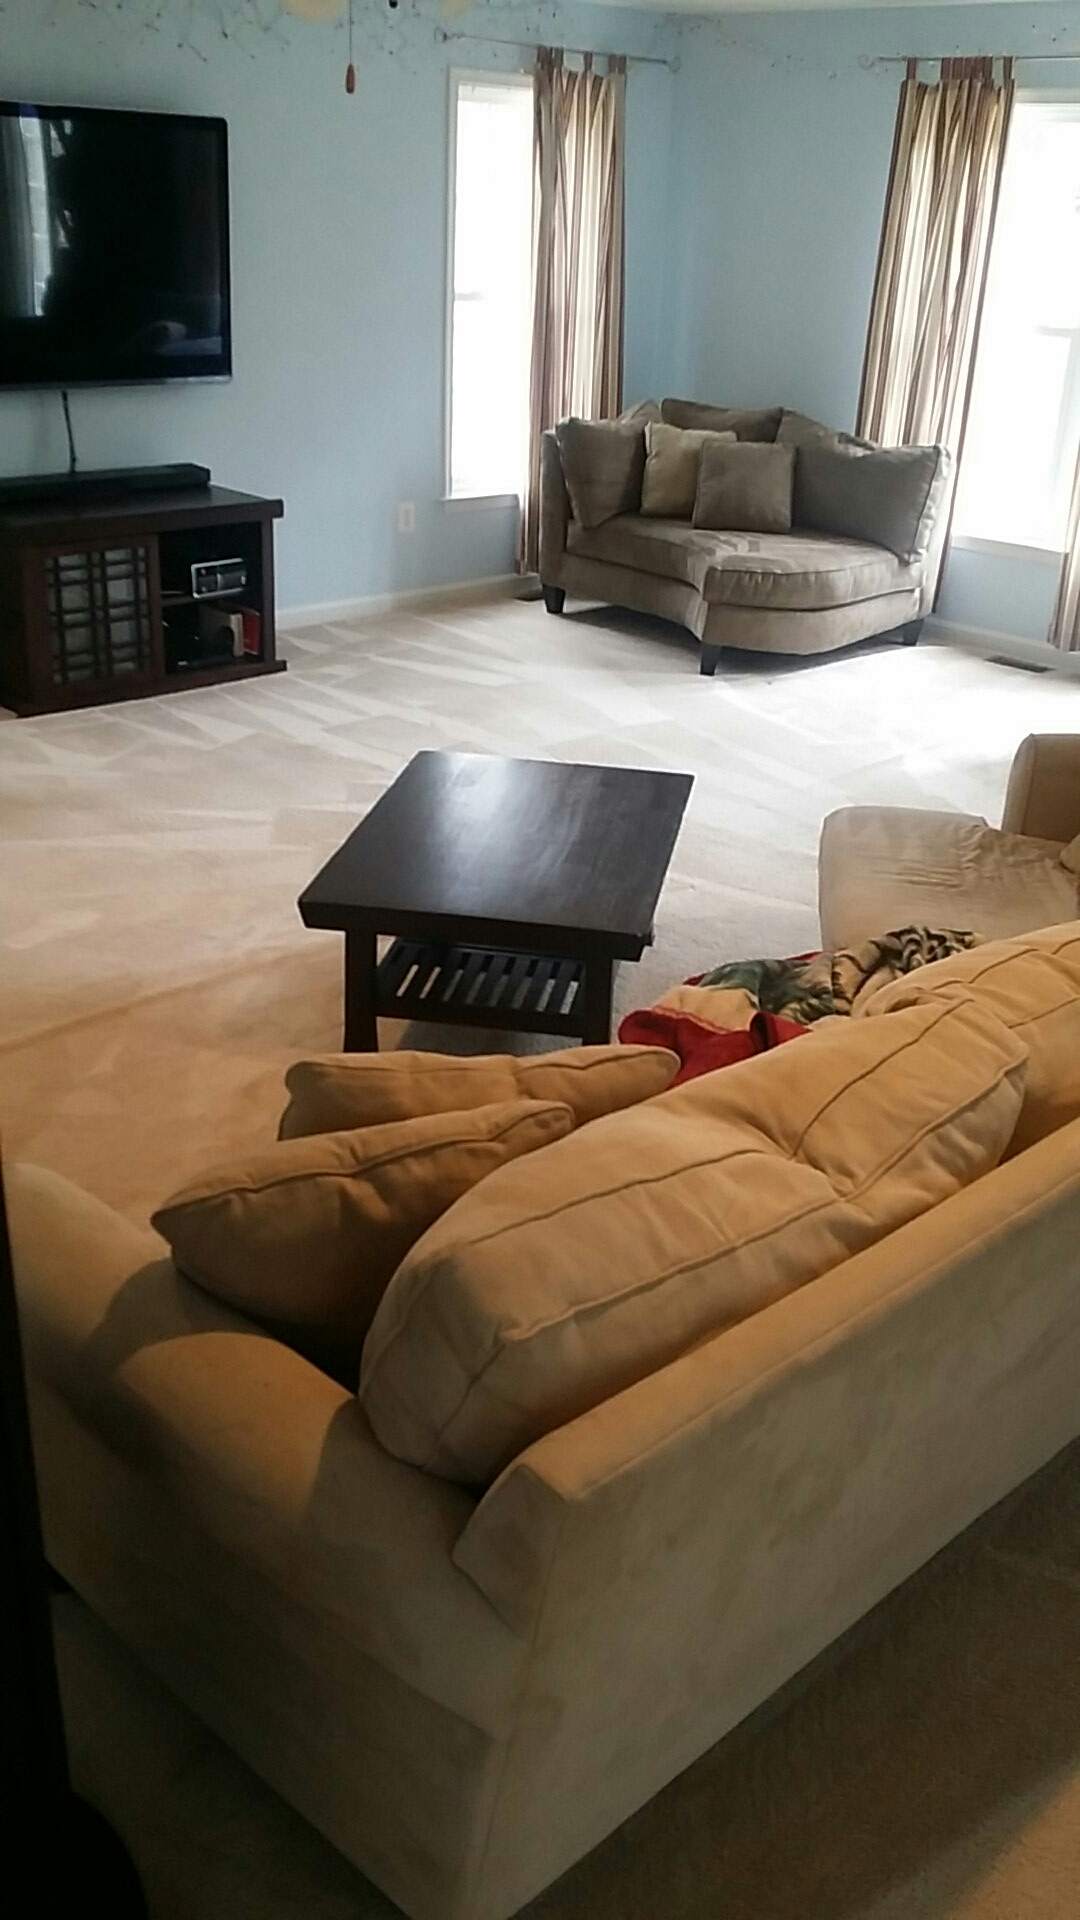 Powhatan, VA - Family Room Carpet turned out Great!